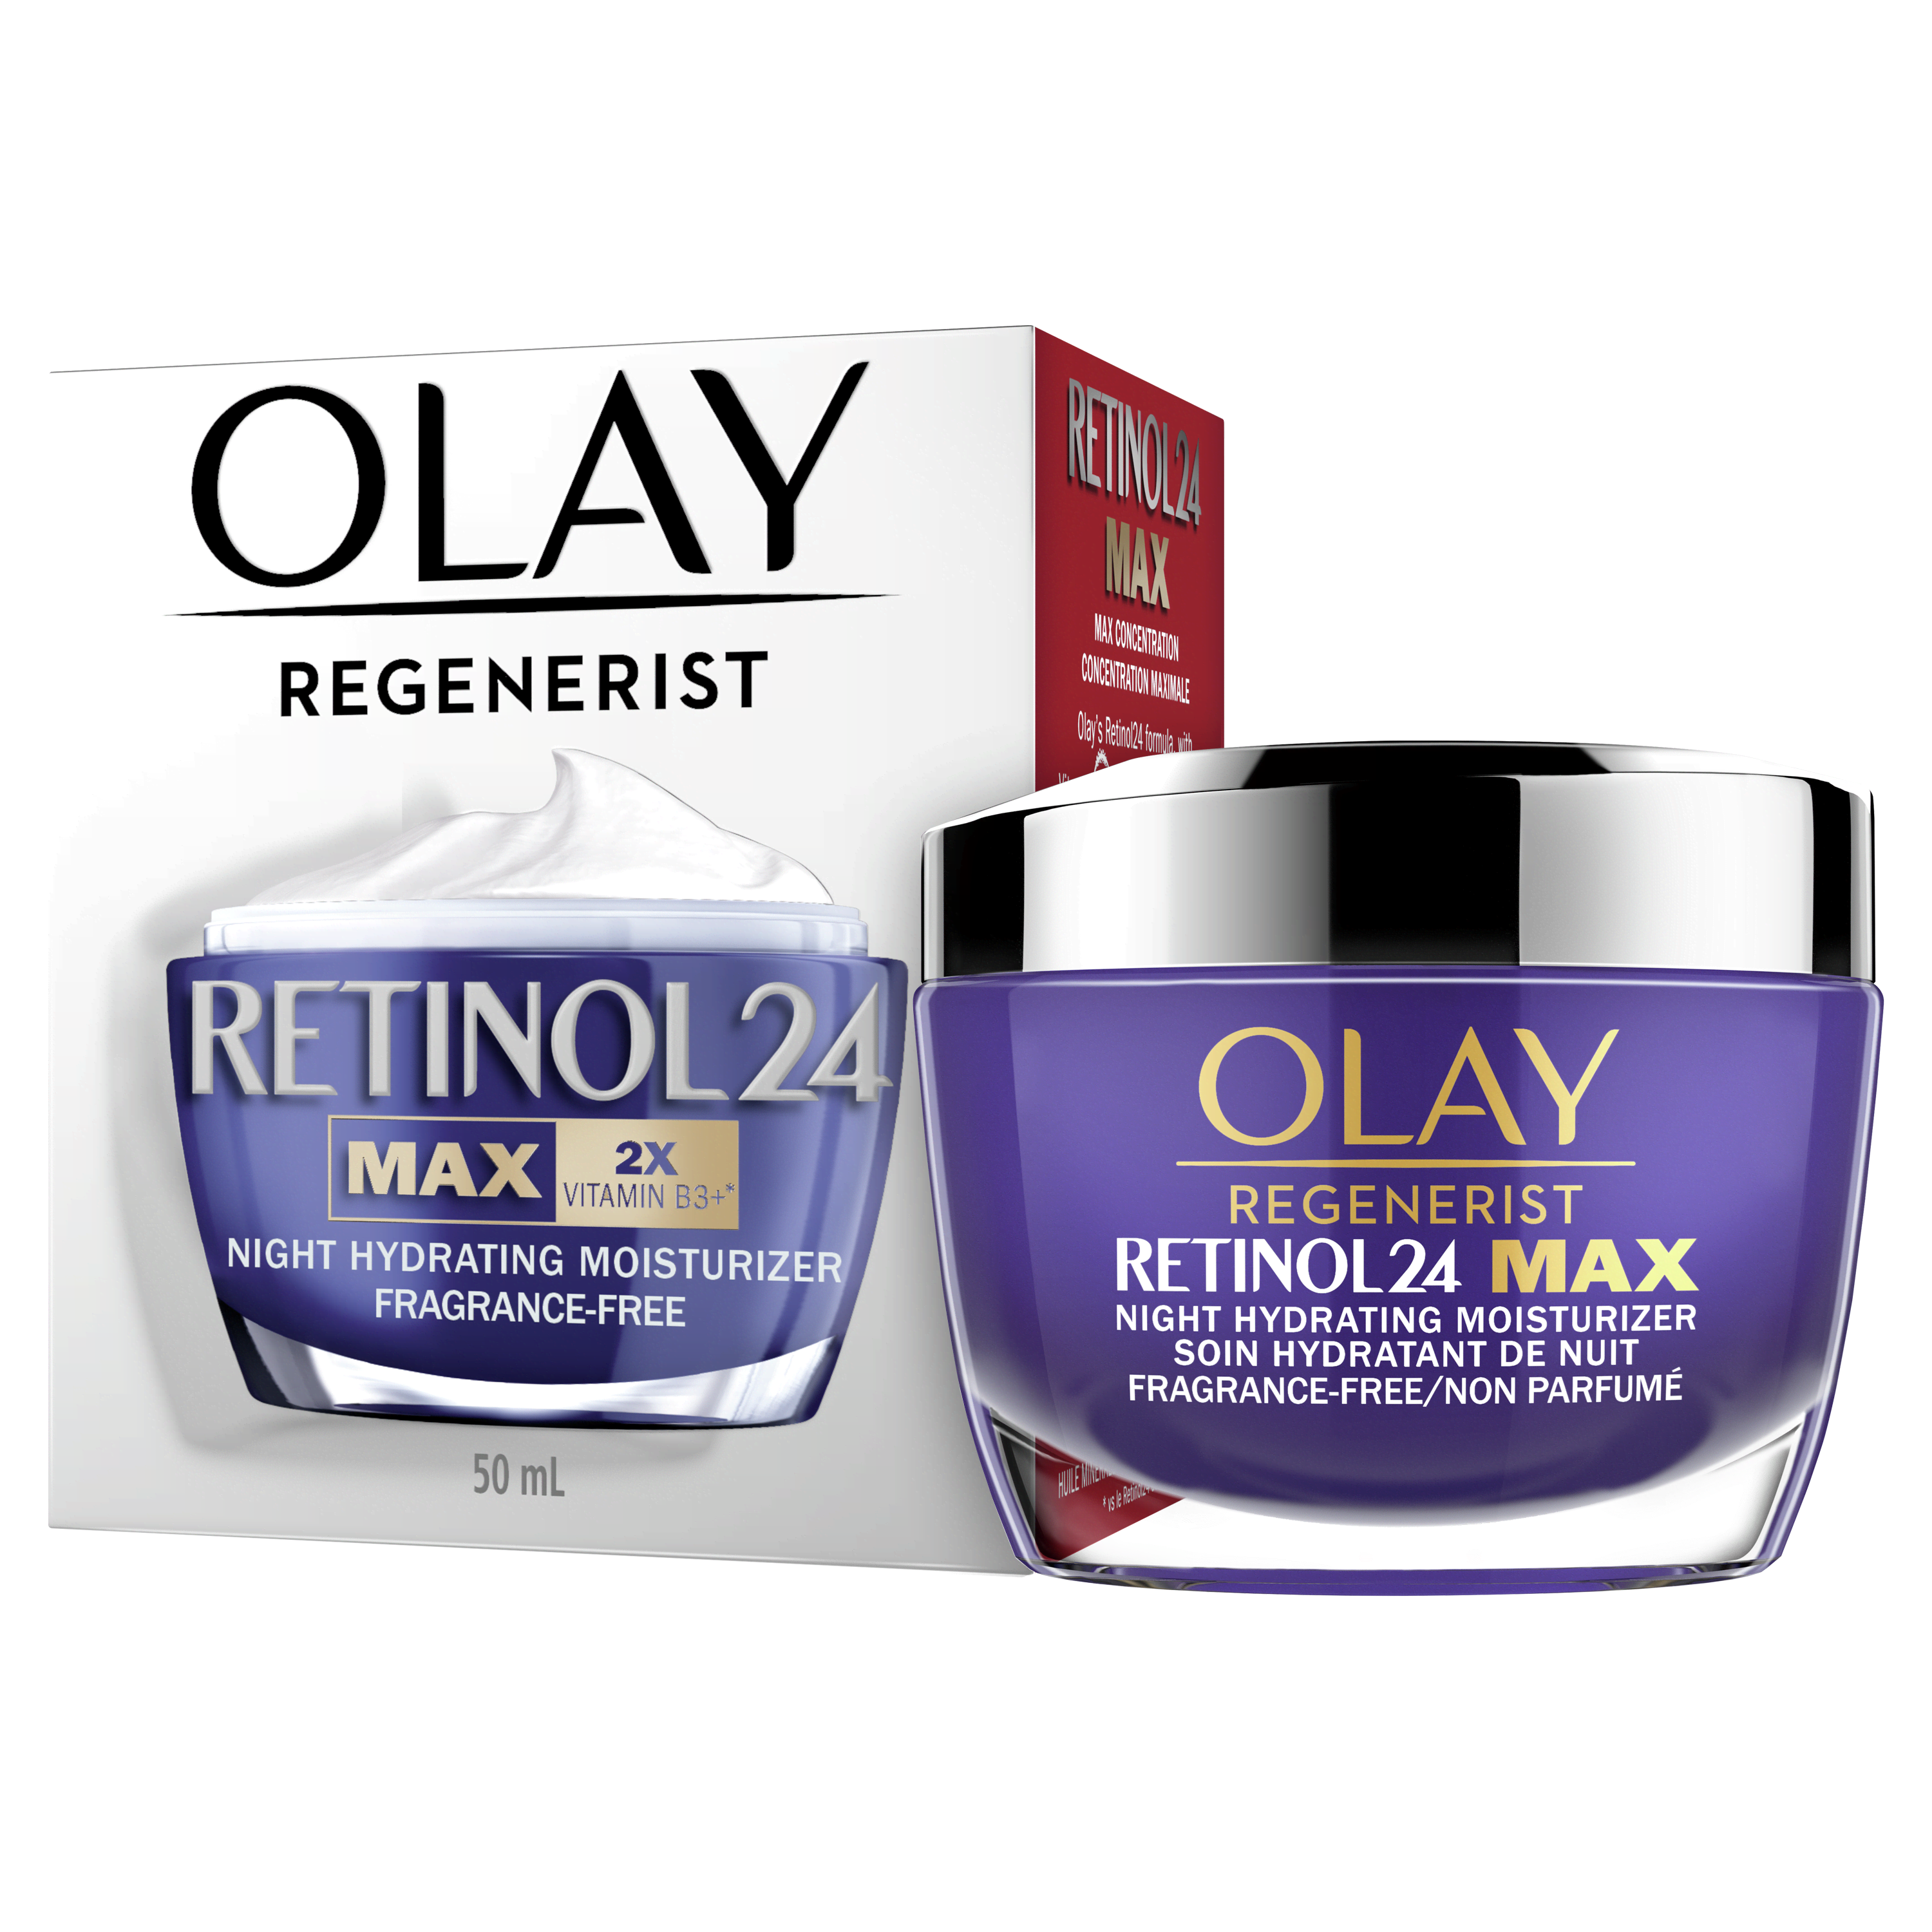 Regenerist Retinol24 MAX Night Moisturizer 50mL - 2